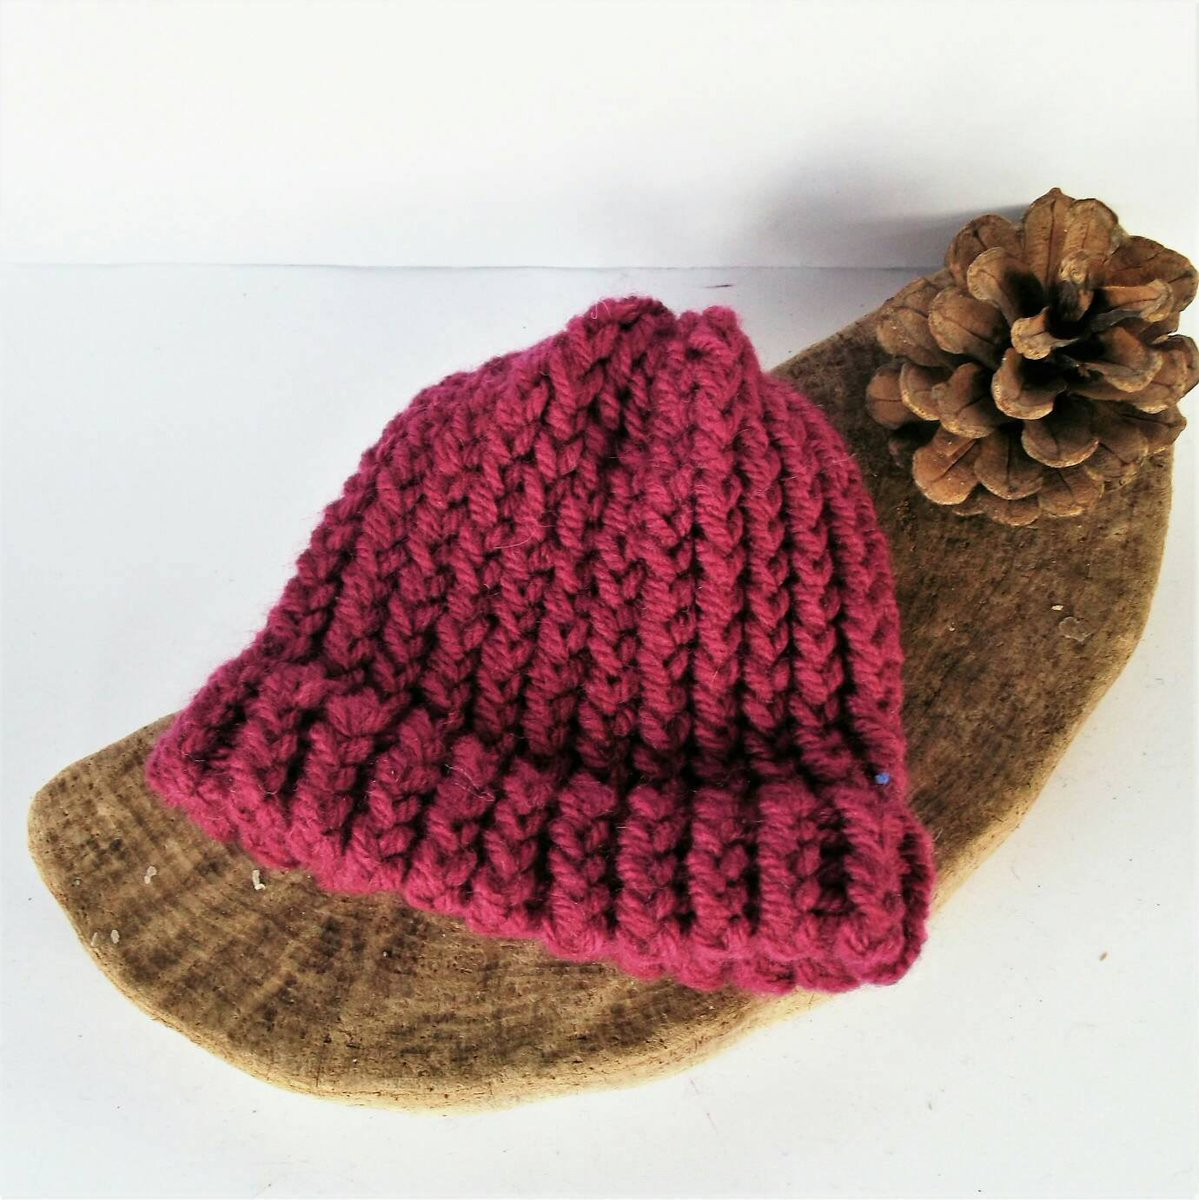 SALE ITEM- Pink Aran baby hat, newborn hat, baby shower gift, baby …  http:// etsy.me/2xrfULG  &nbsp;   #Etsysale #Etsychaching <br>http://pic.twitter.com/dYomg8JuKd